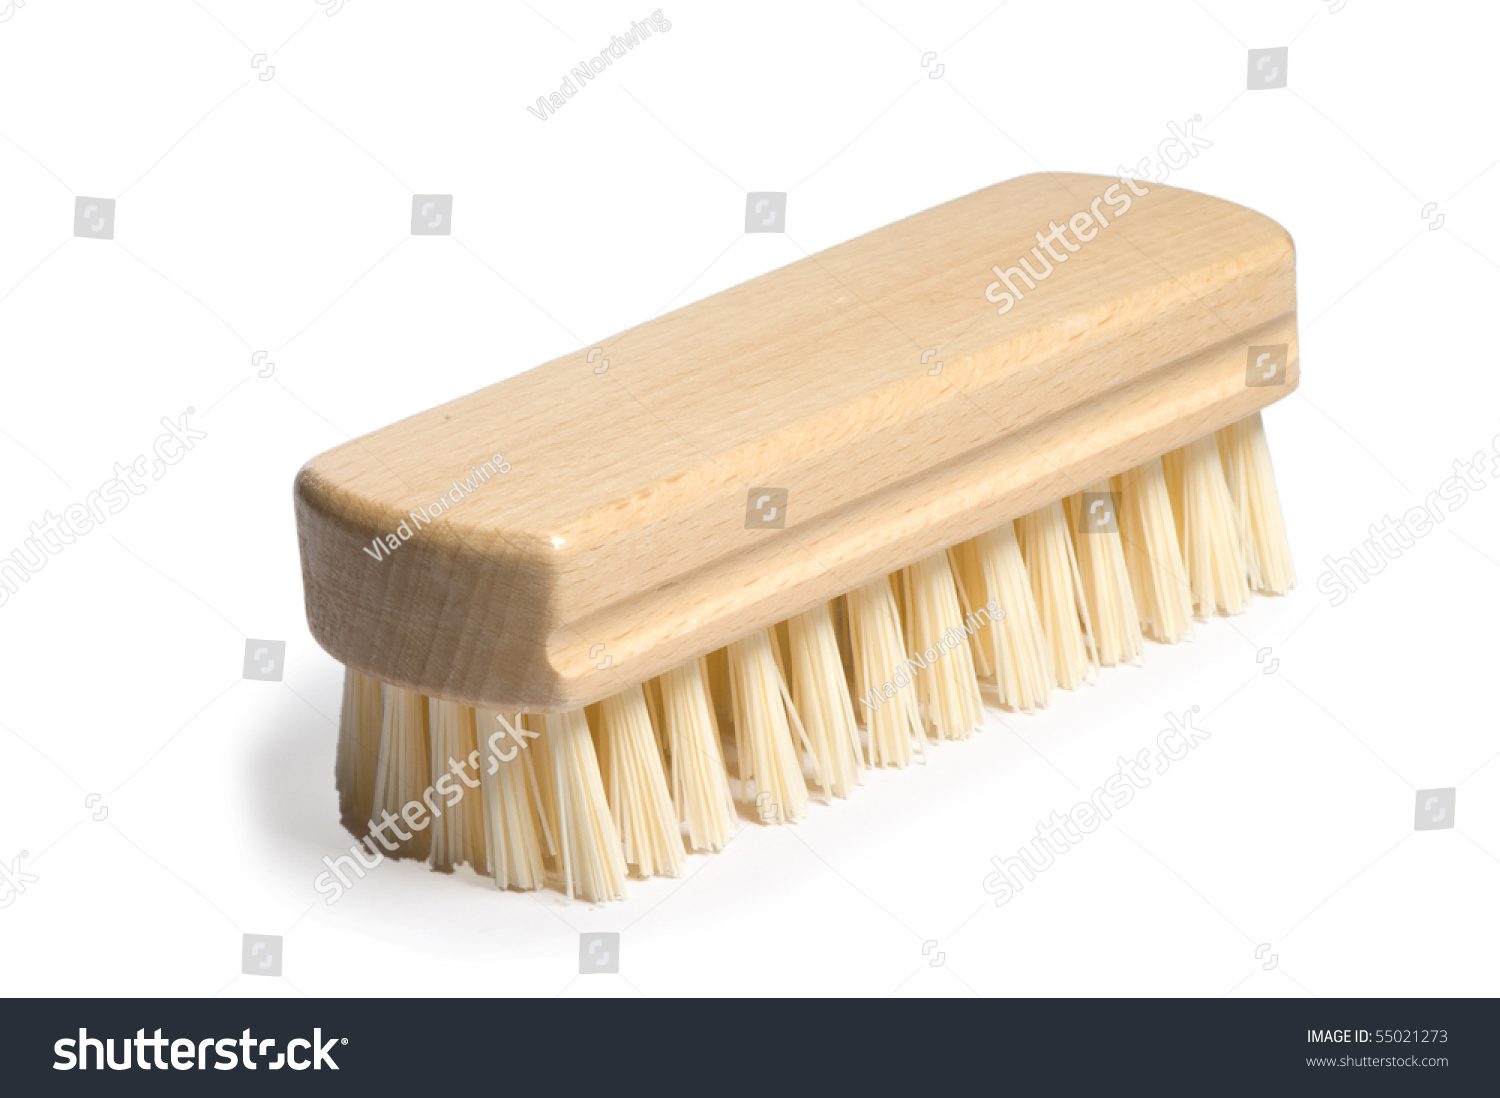 how to clean wooden hair brush